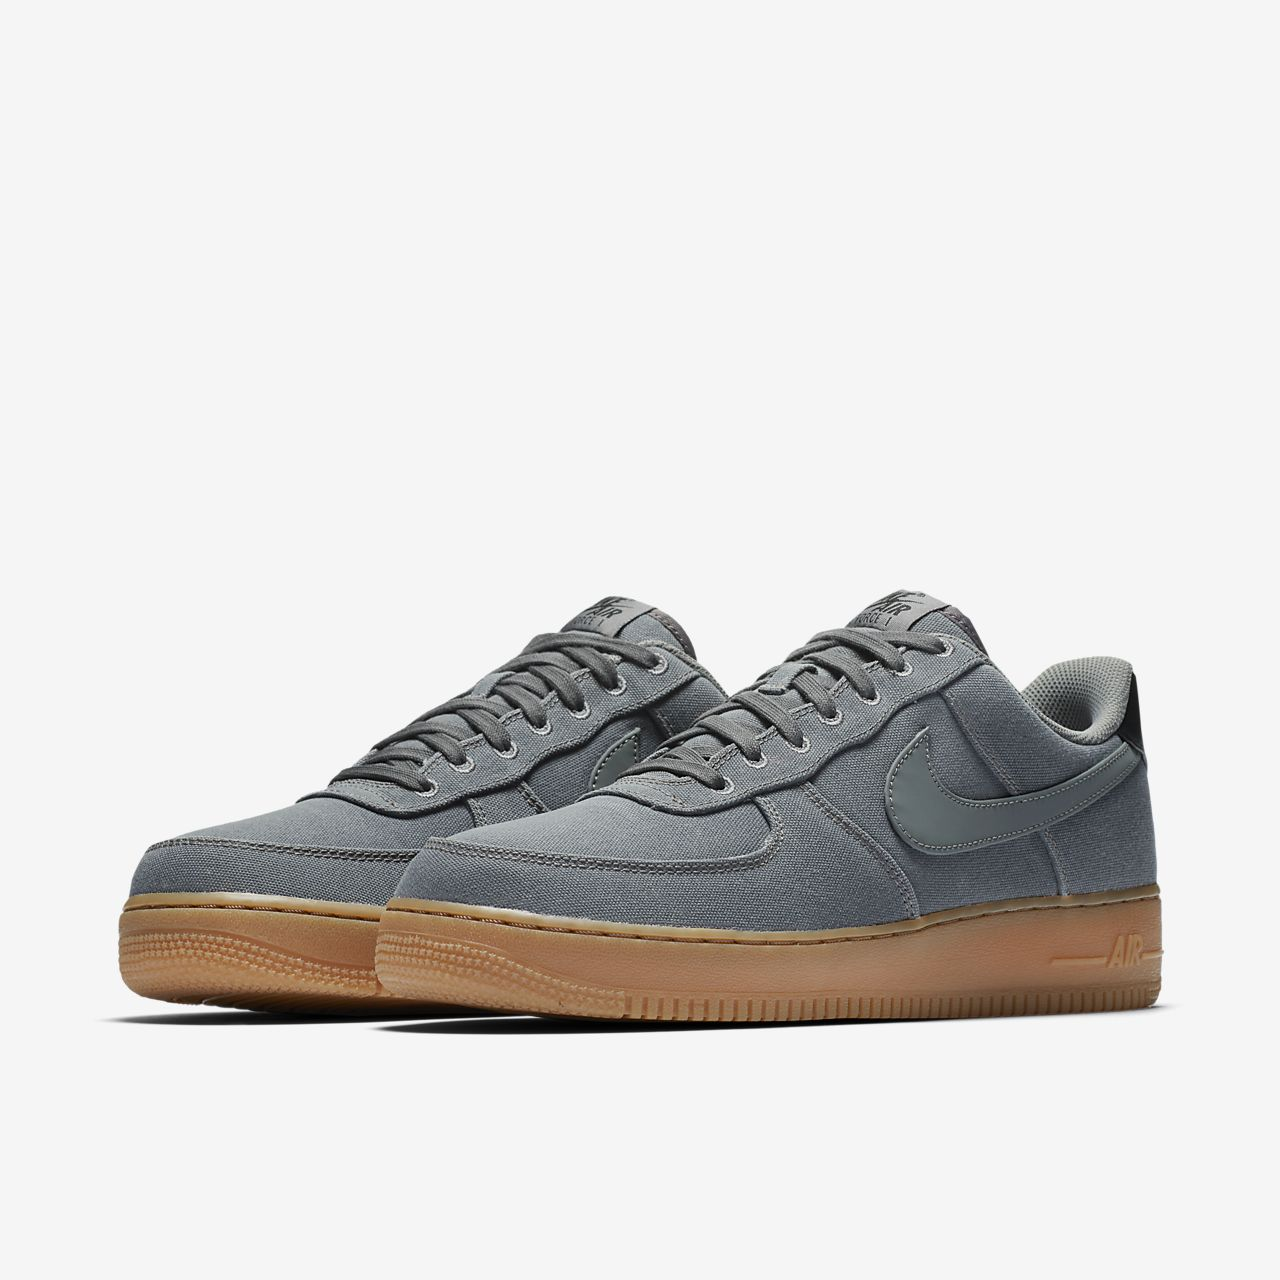 Pour Chaussure Air 1 Lv8 Force Style Homme '07 Nike CxWBerdo